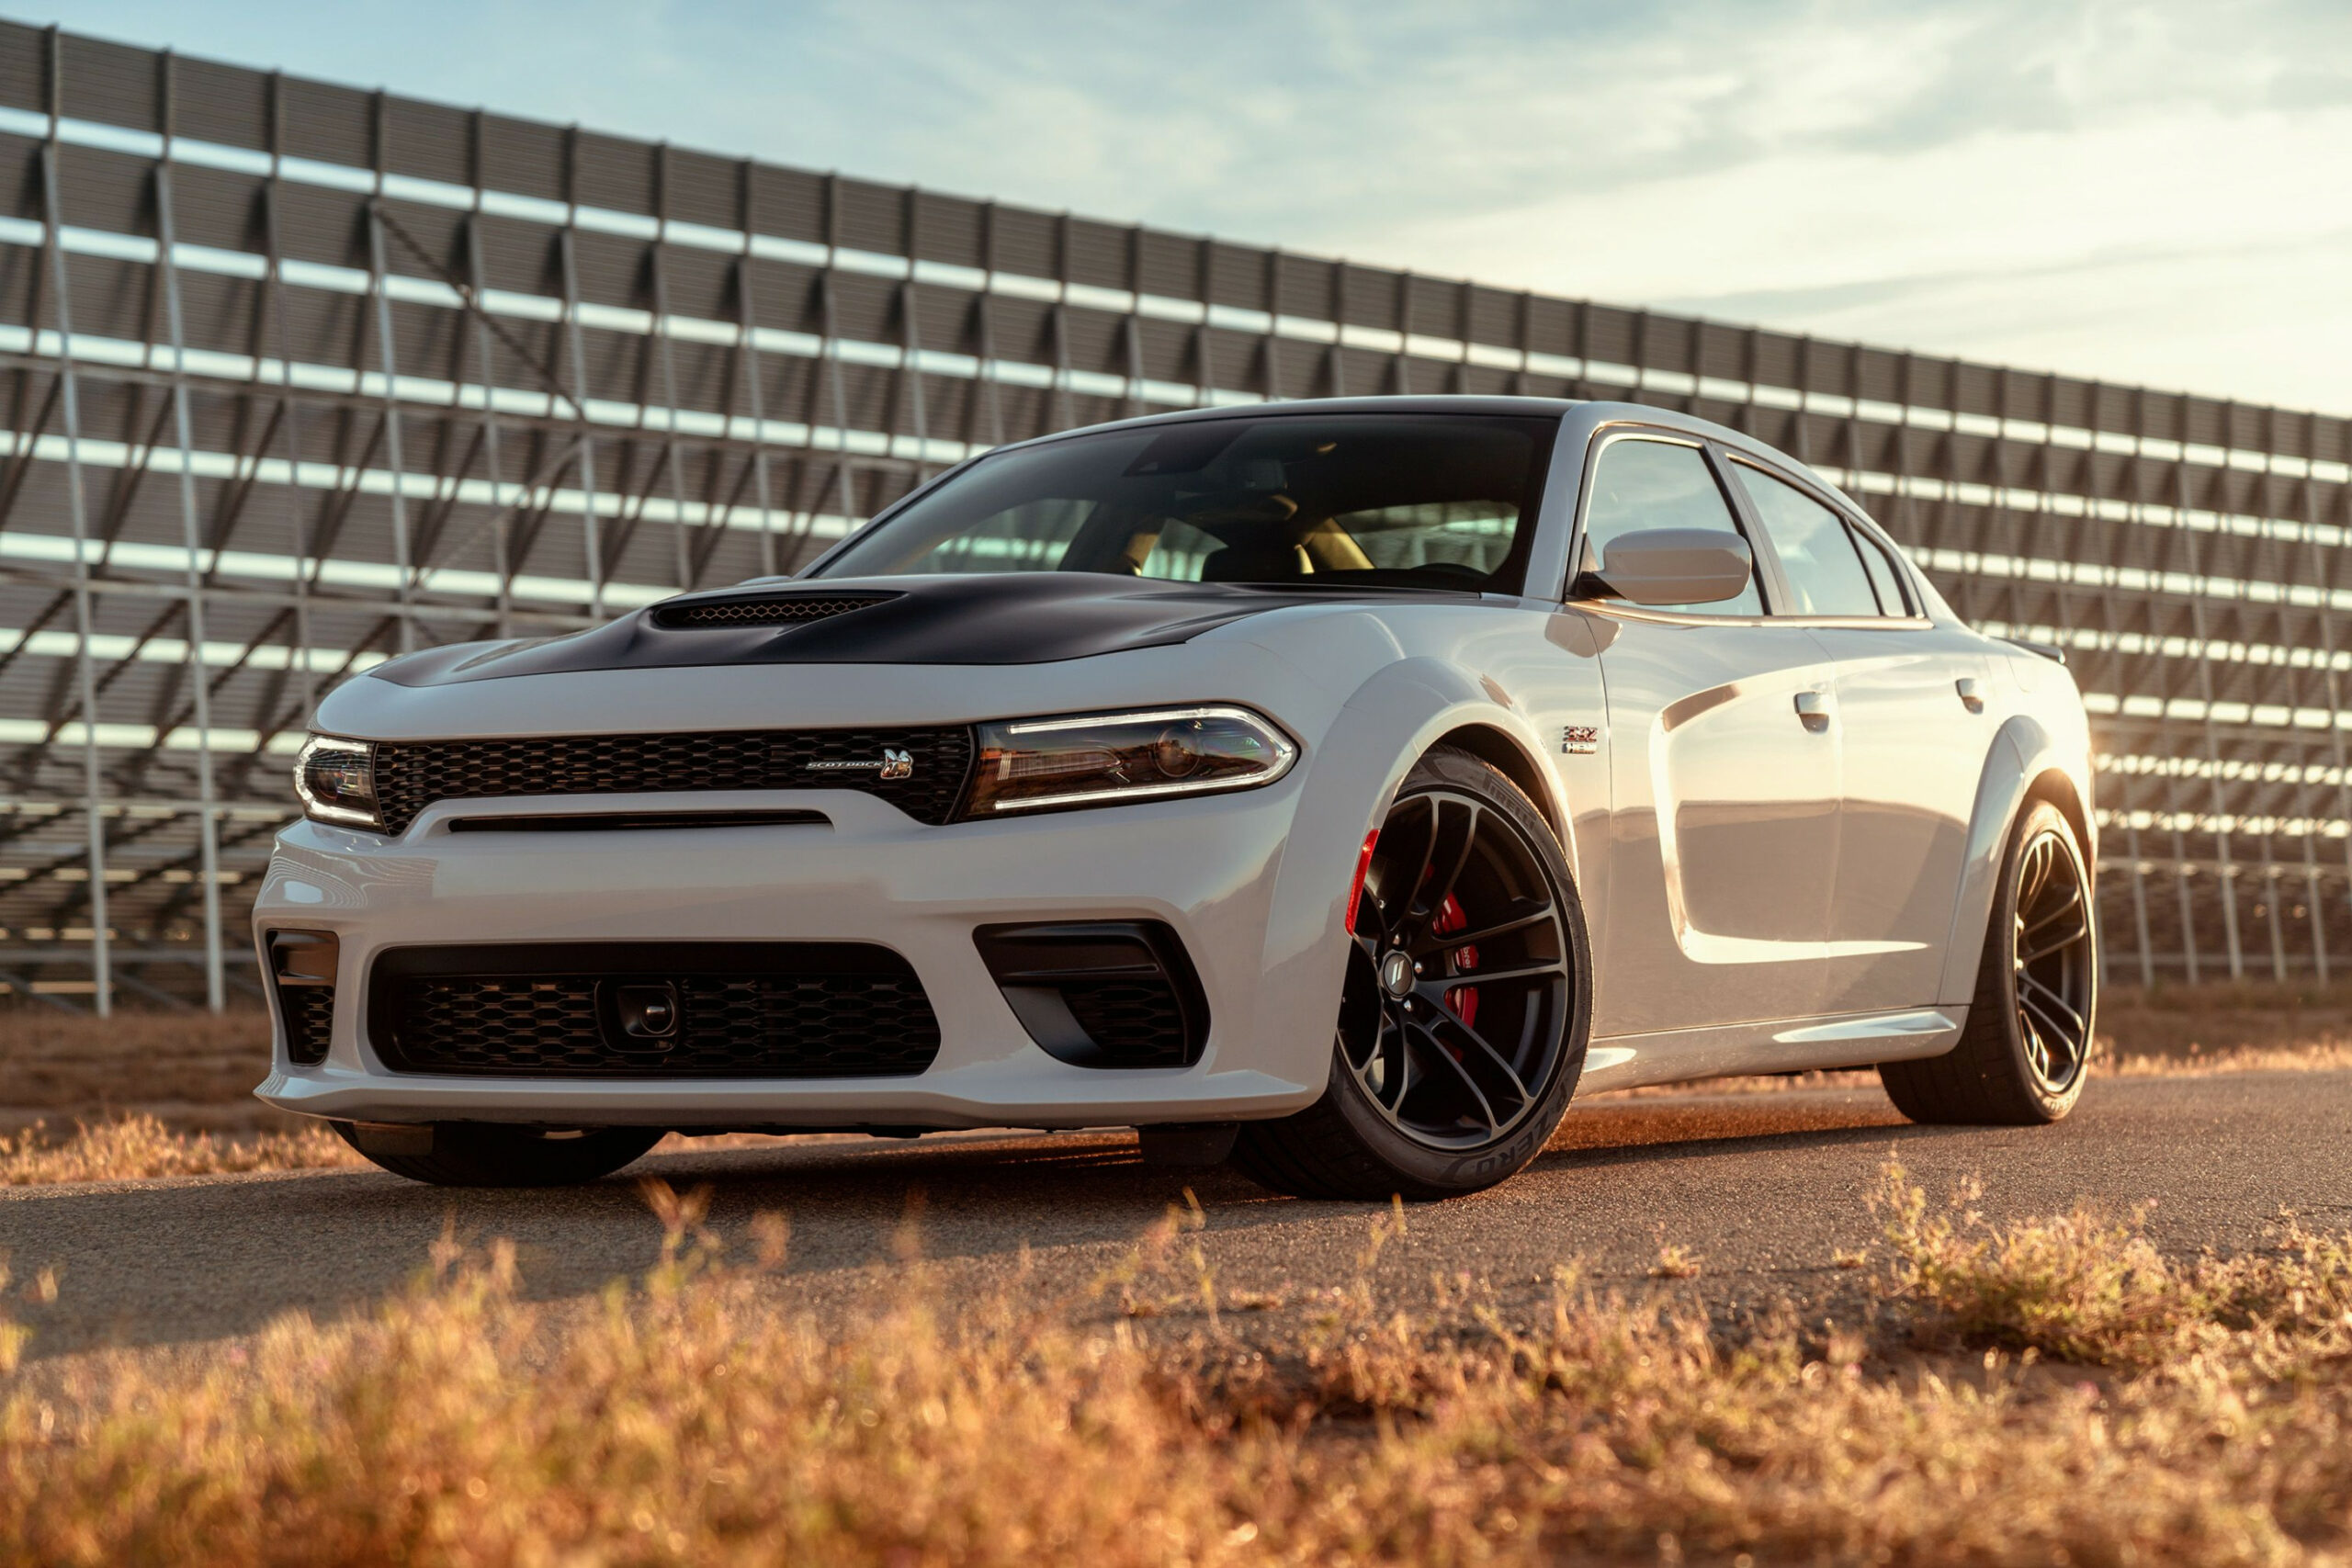 7 Dodge Charger Review, Pricing, and Specs - 2020 dodge charger